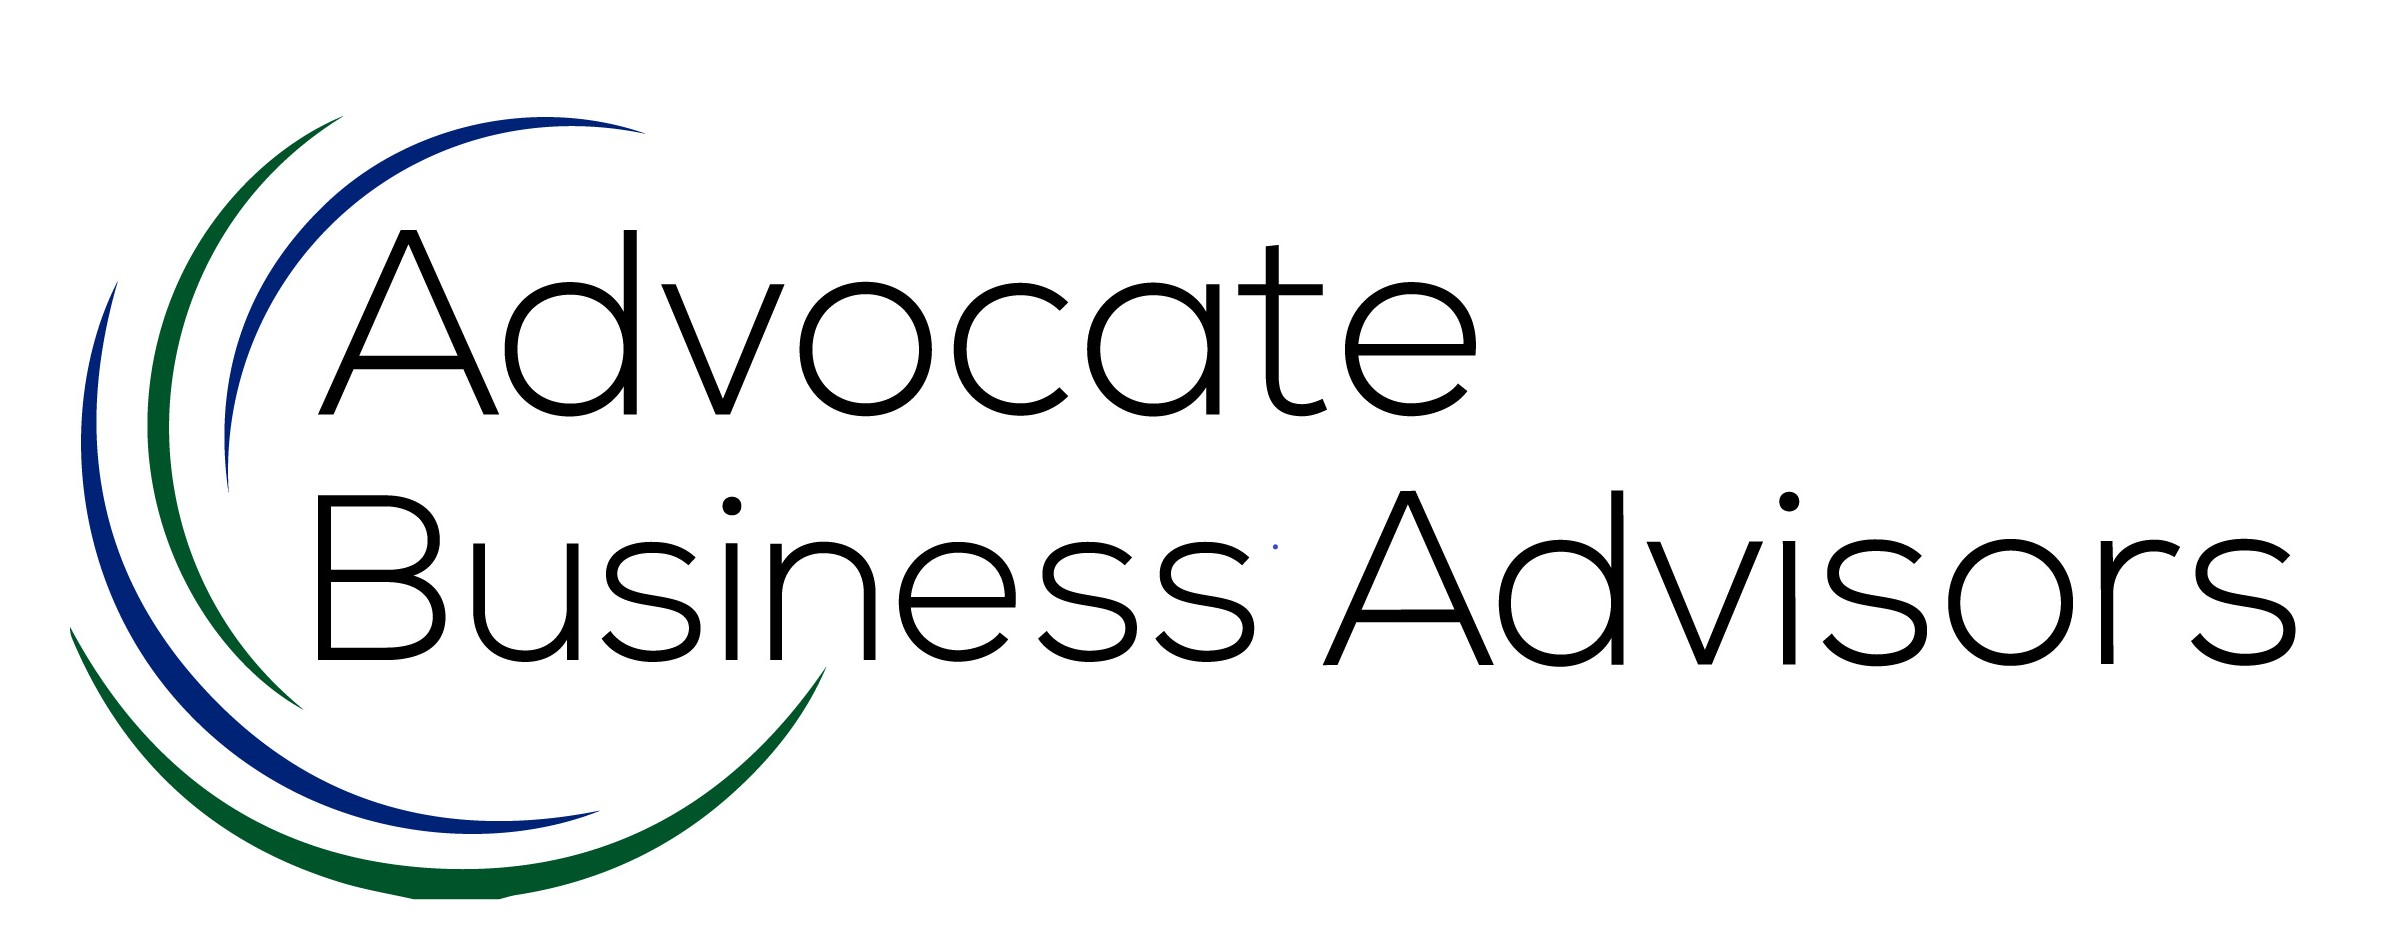 Advocate Business Advisors